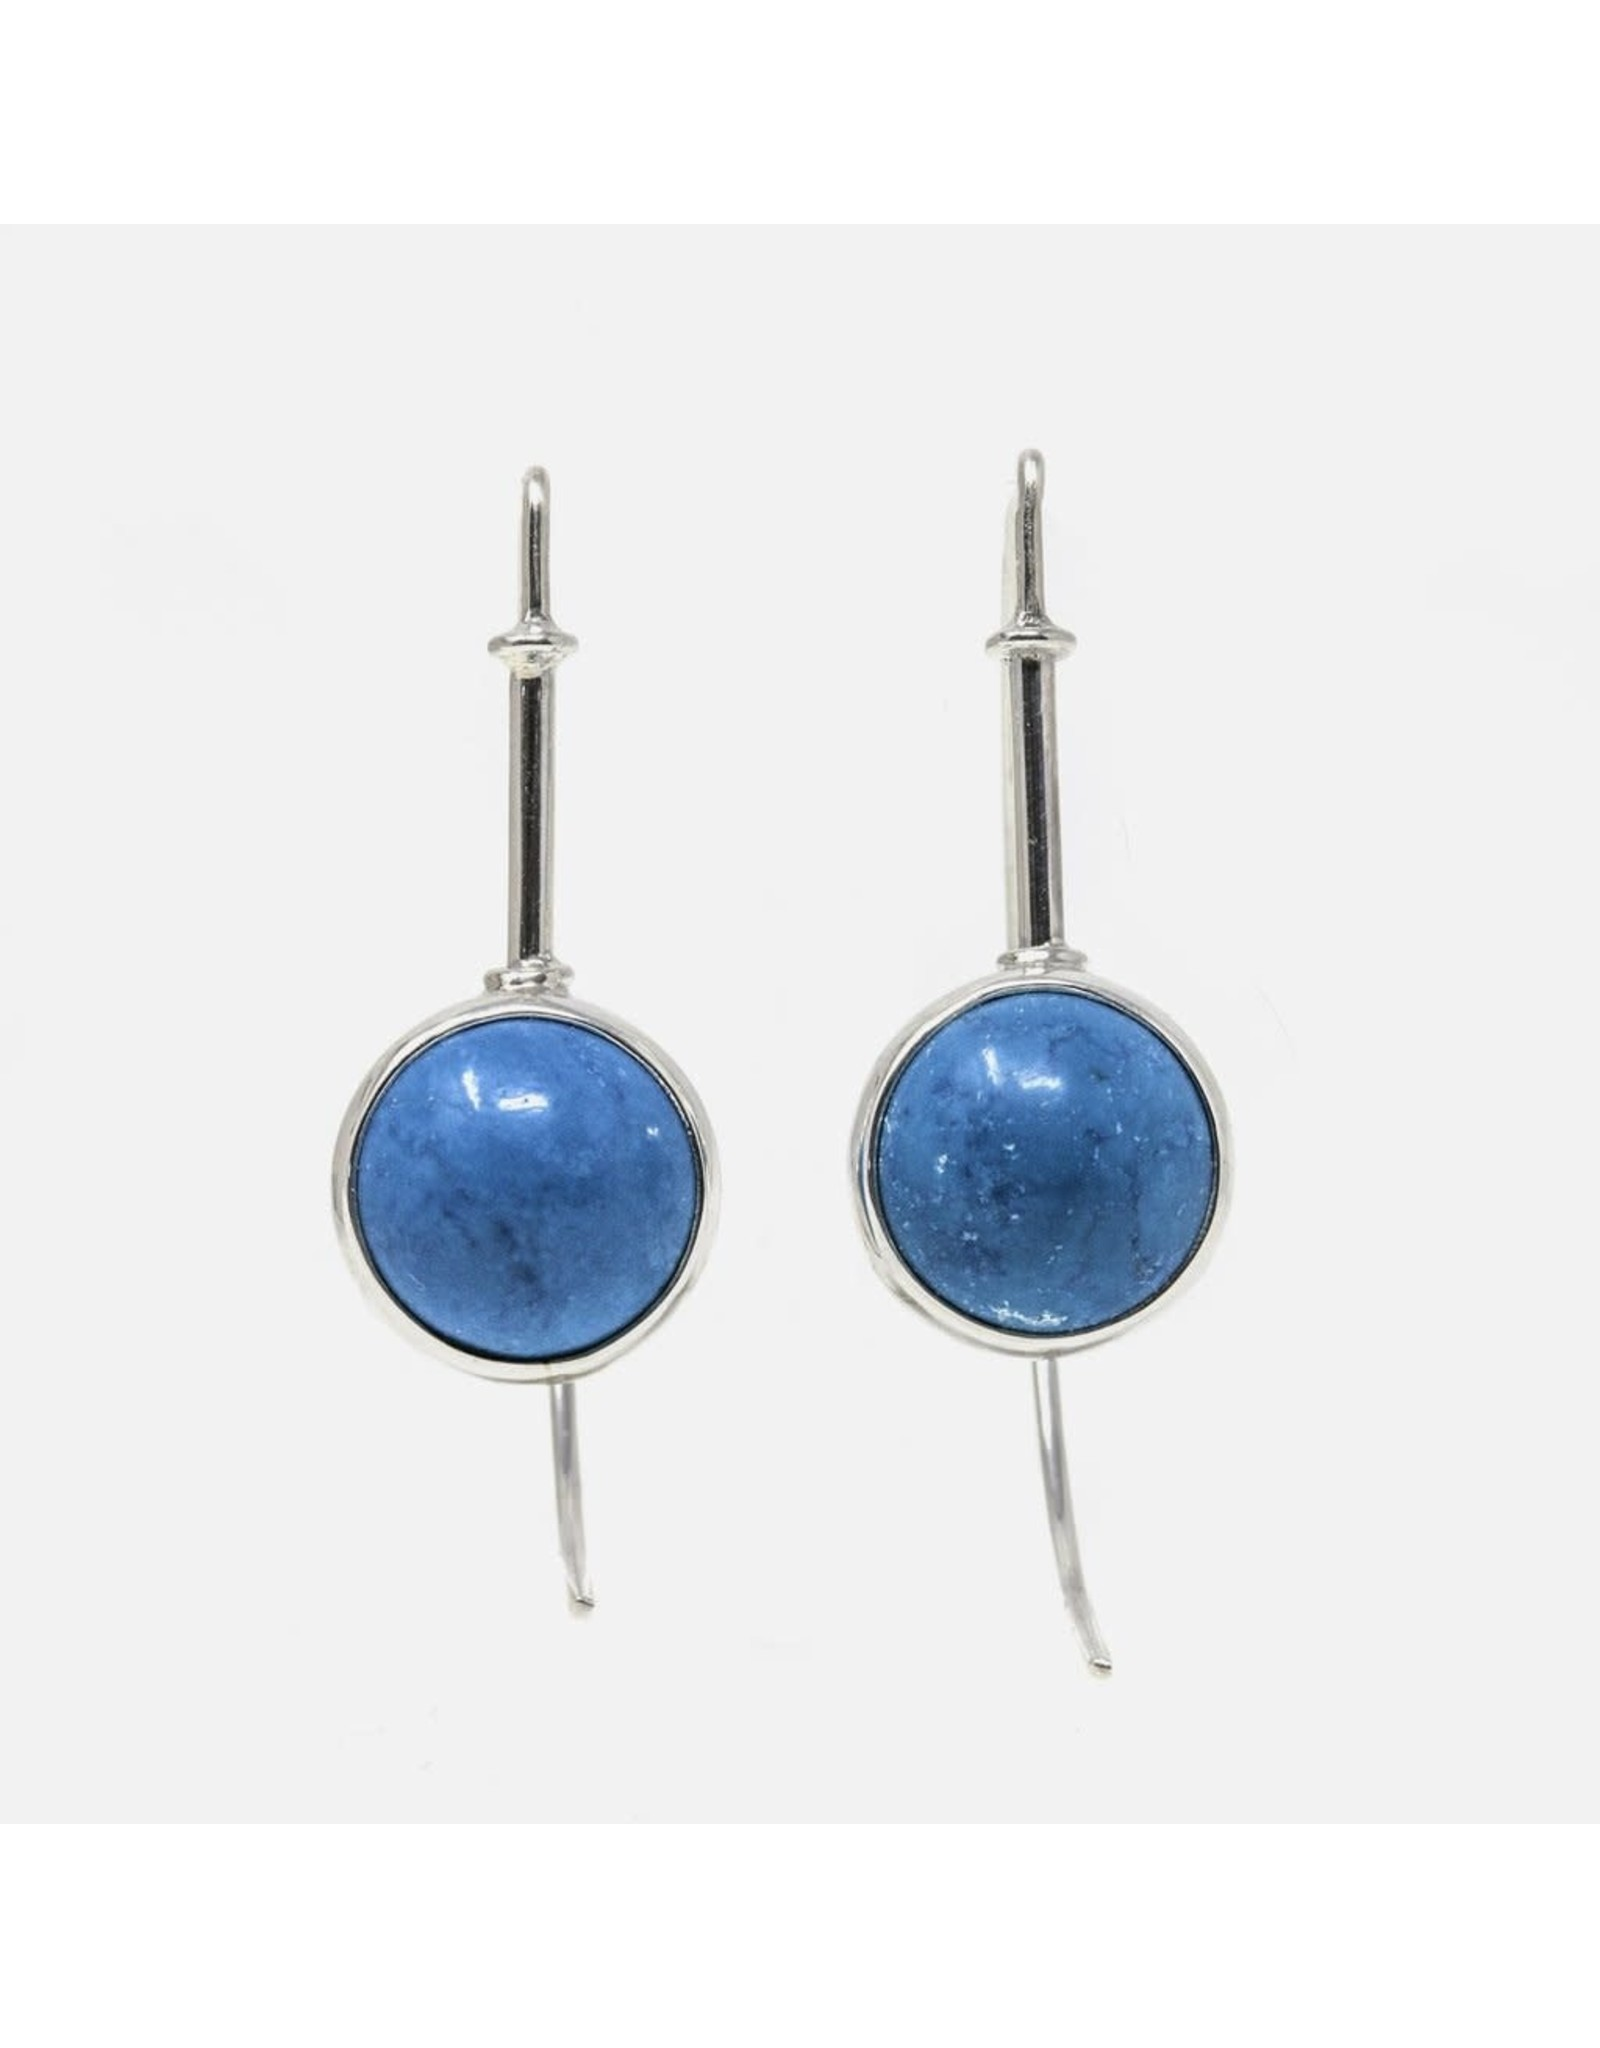 Turquoise & Sterling Silver Earrings, Mexico